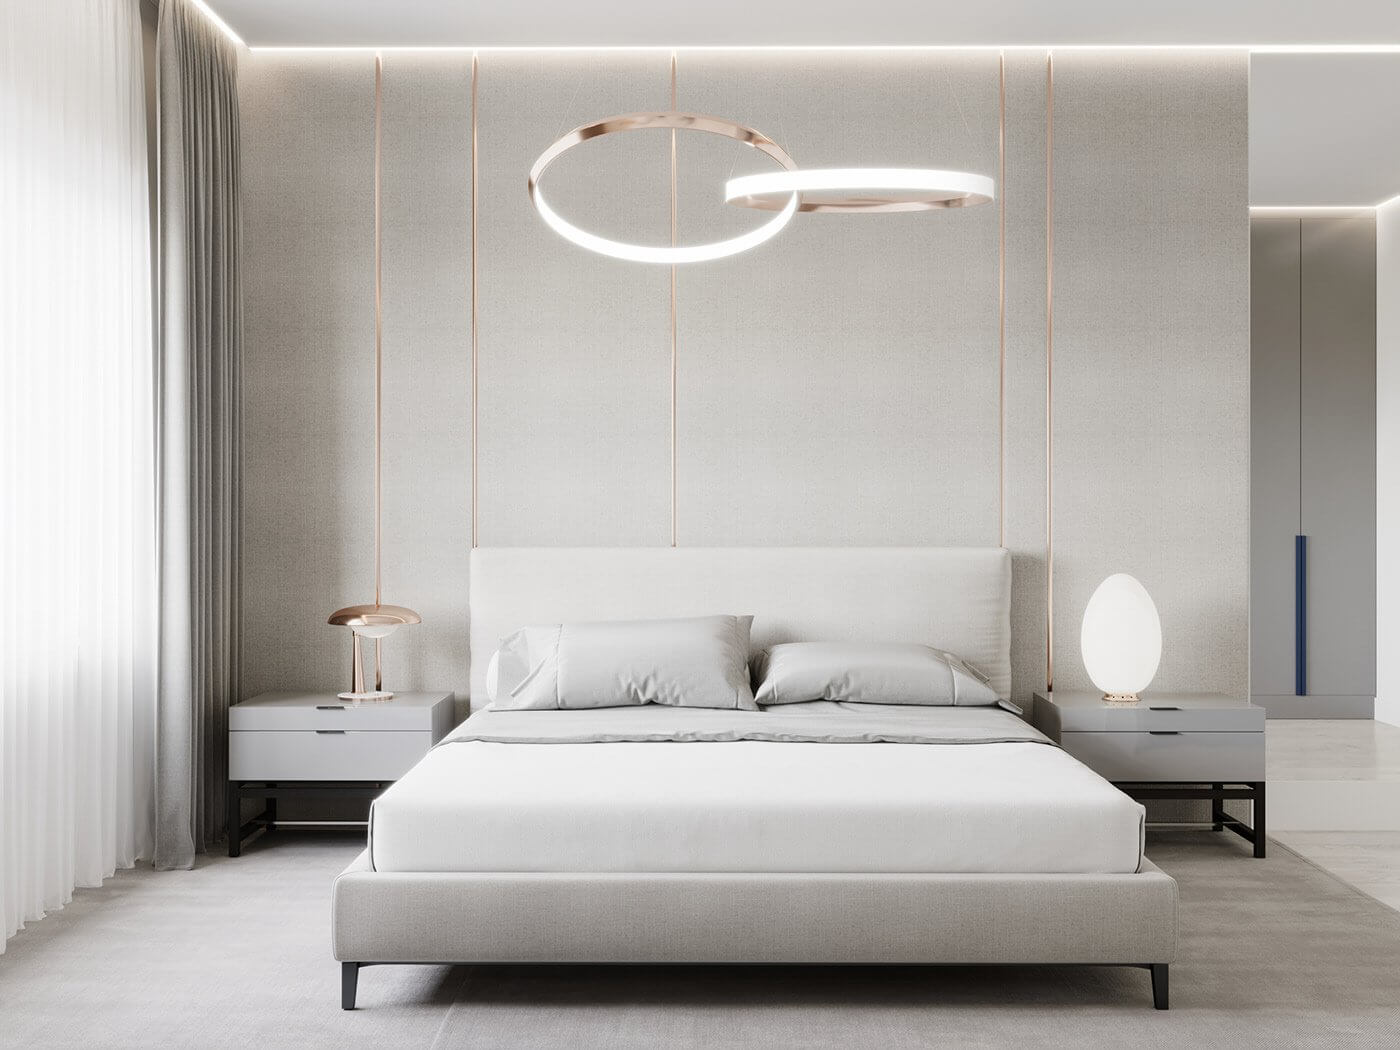 Modern Bedroom interior bed copper pendant lamps - cgi visualization